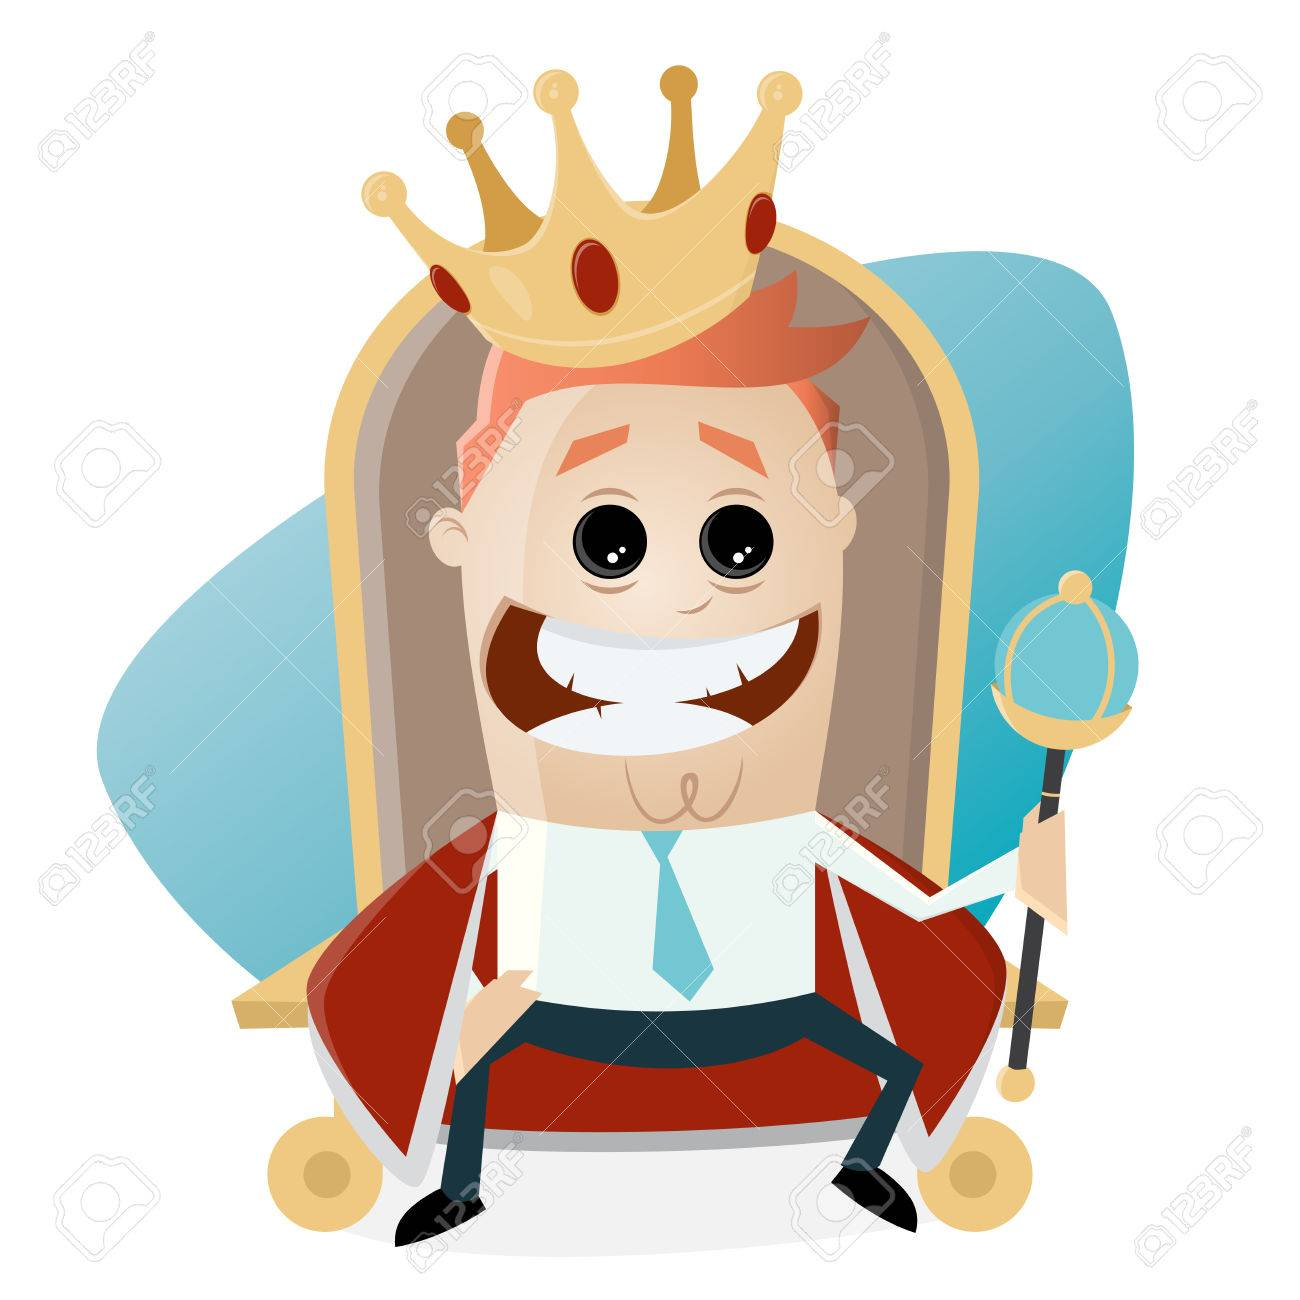 king on throne clipart.